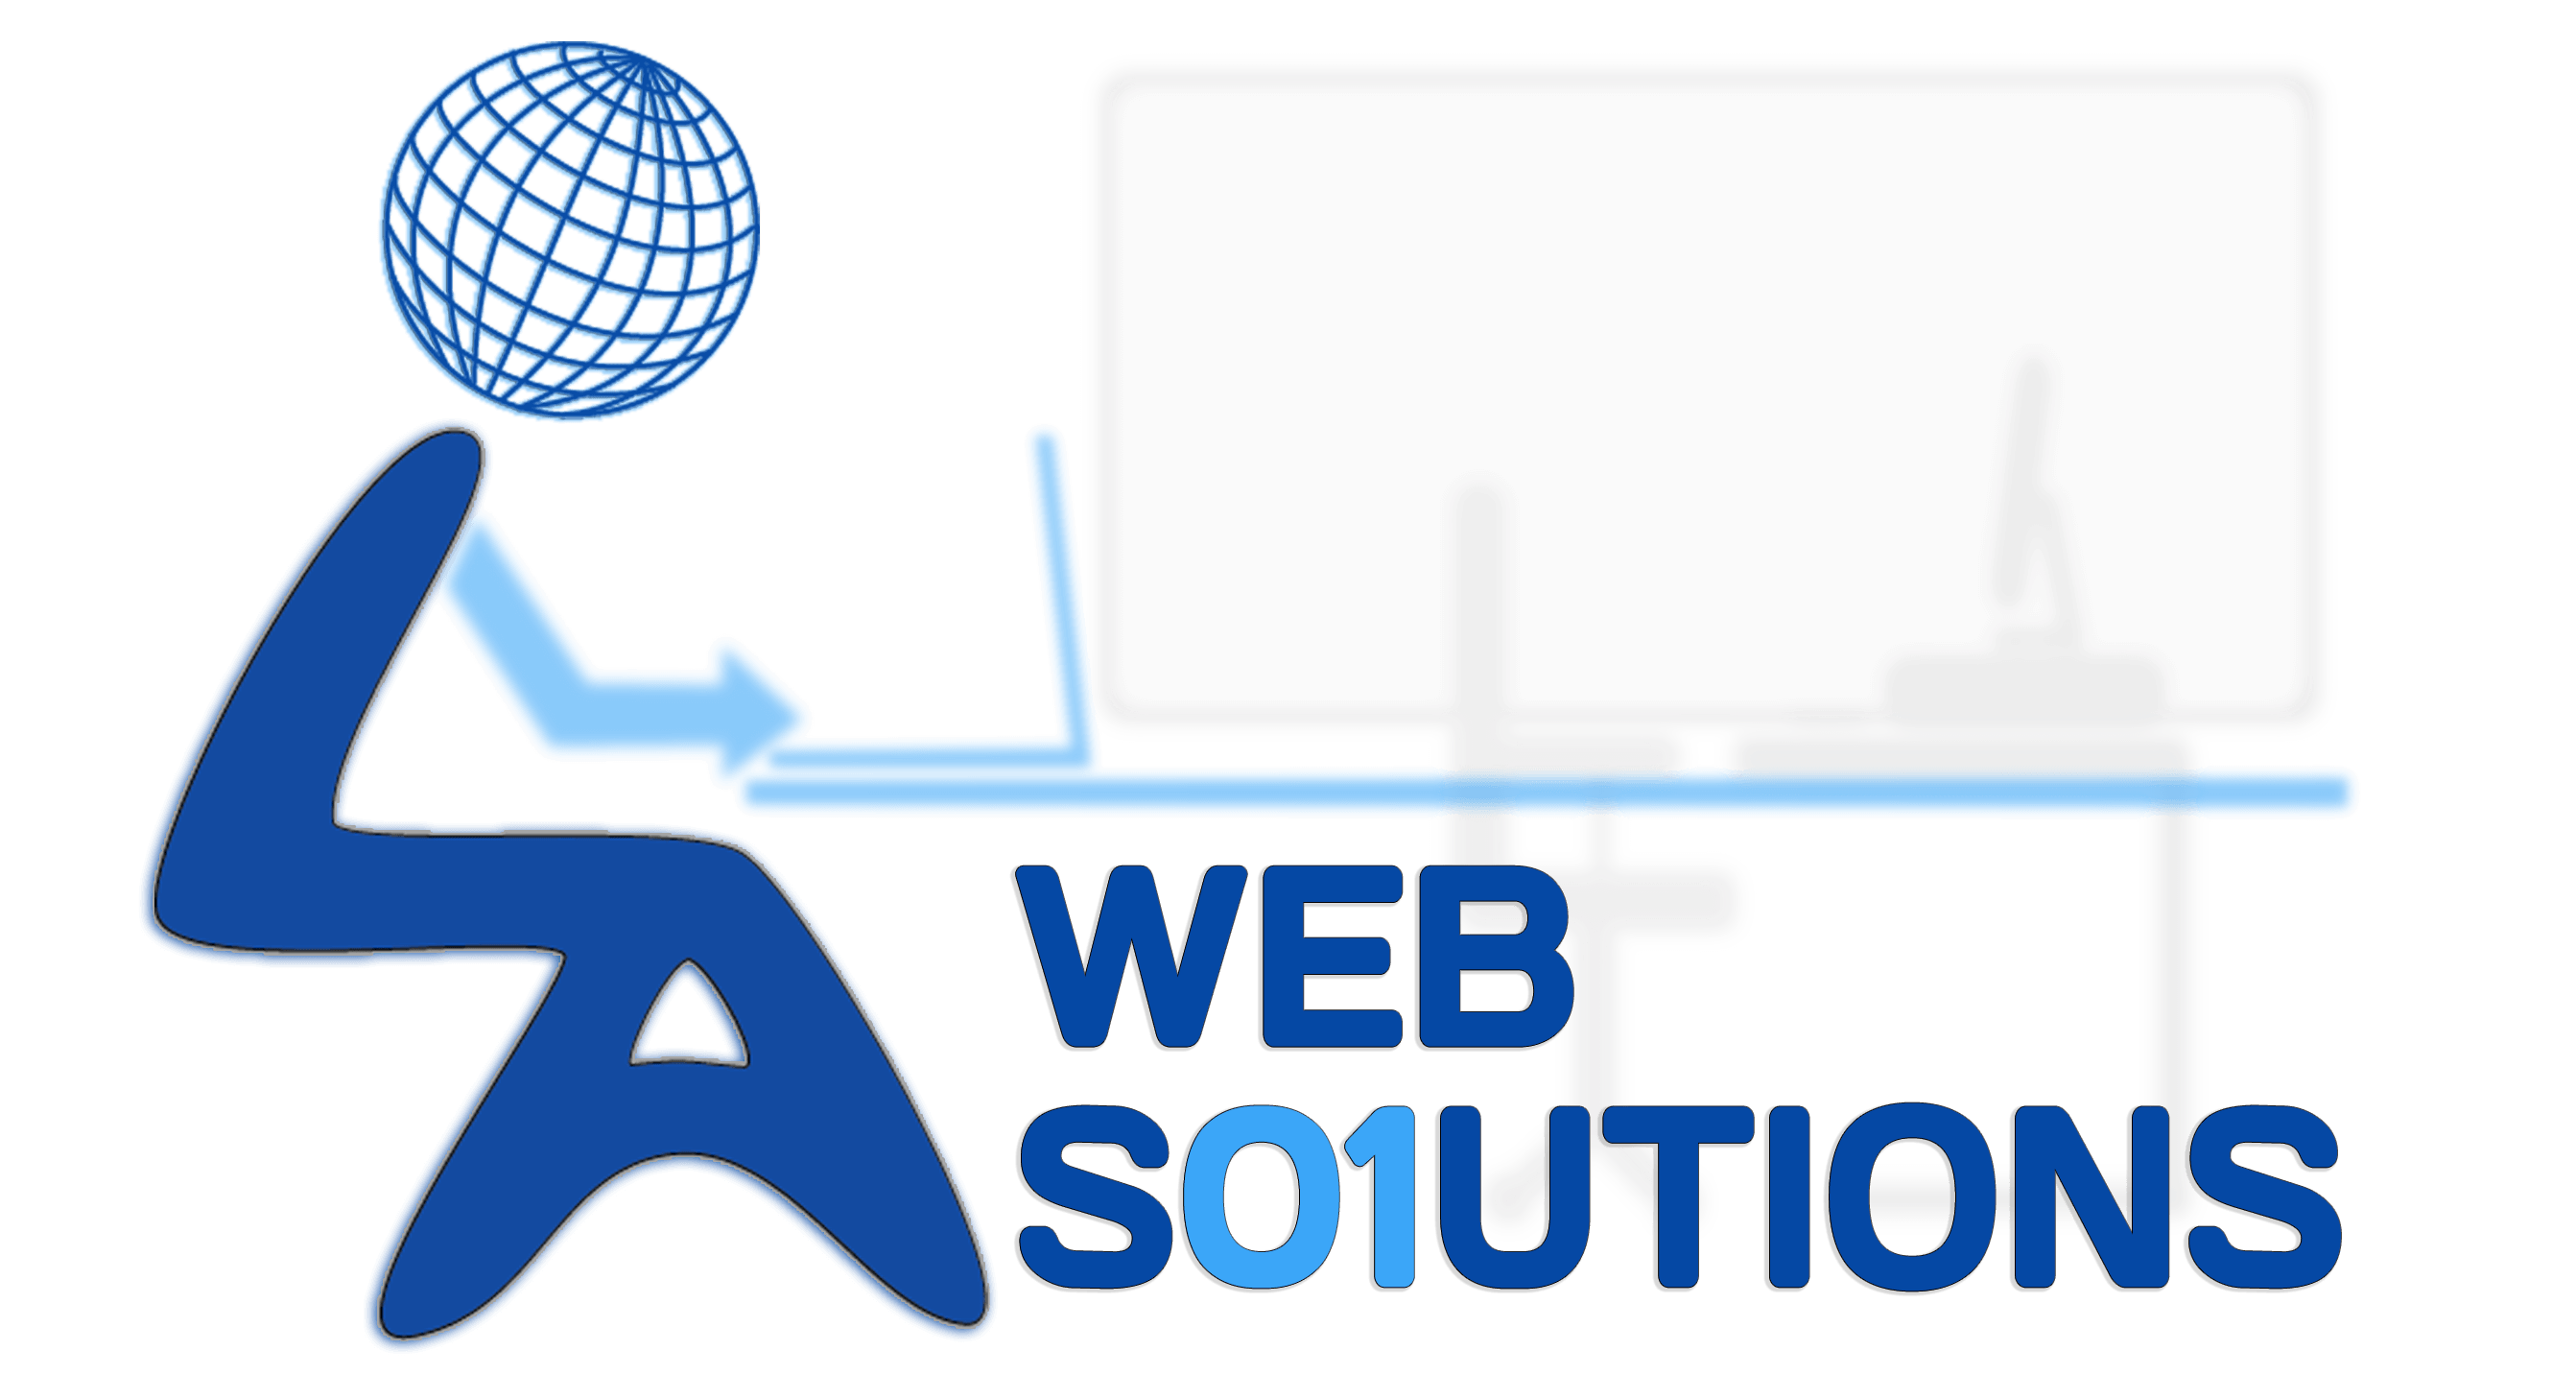 L A Web Solutions Limited